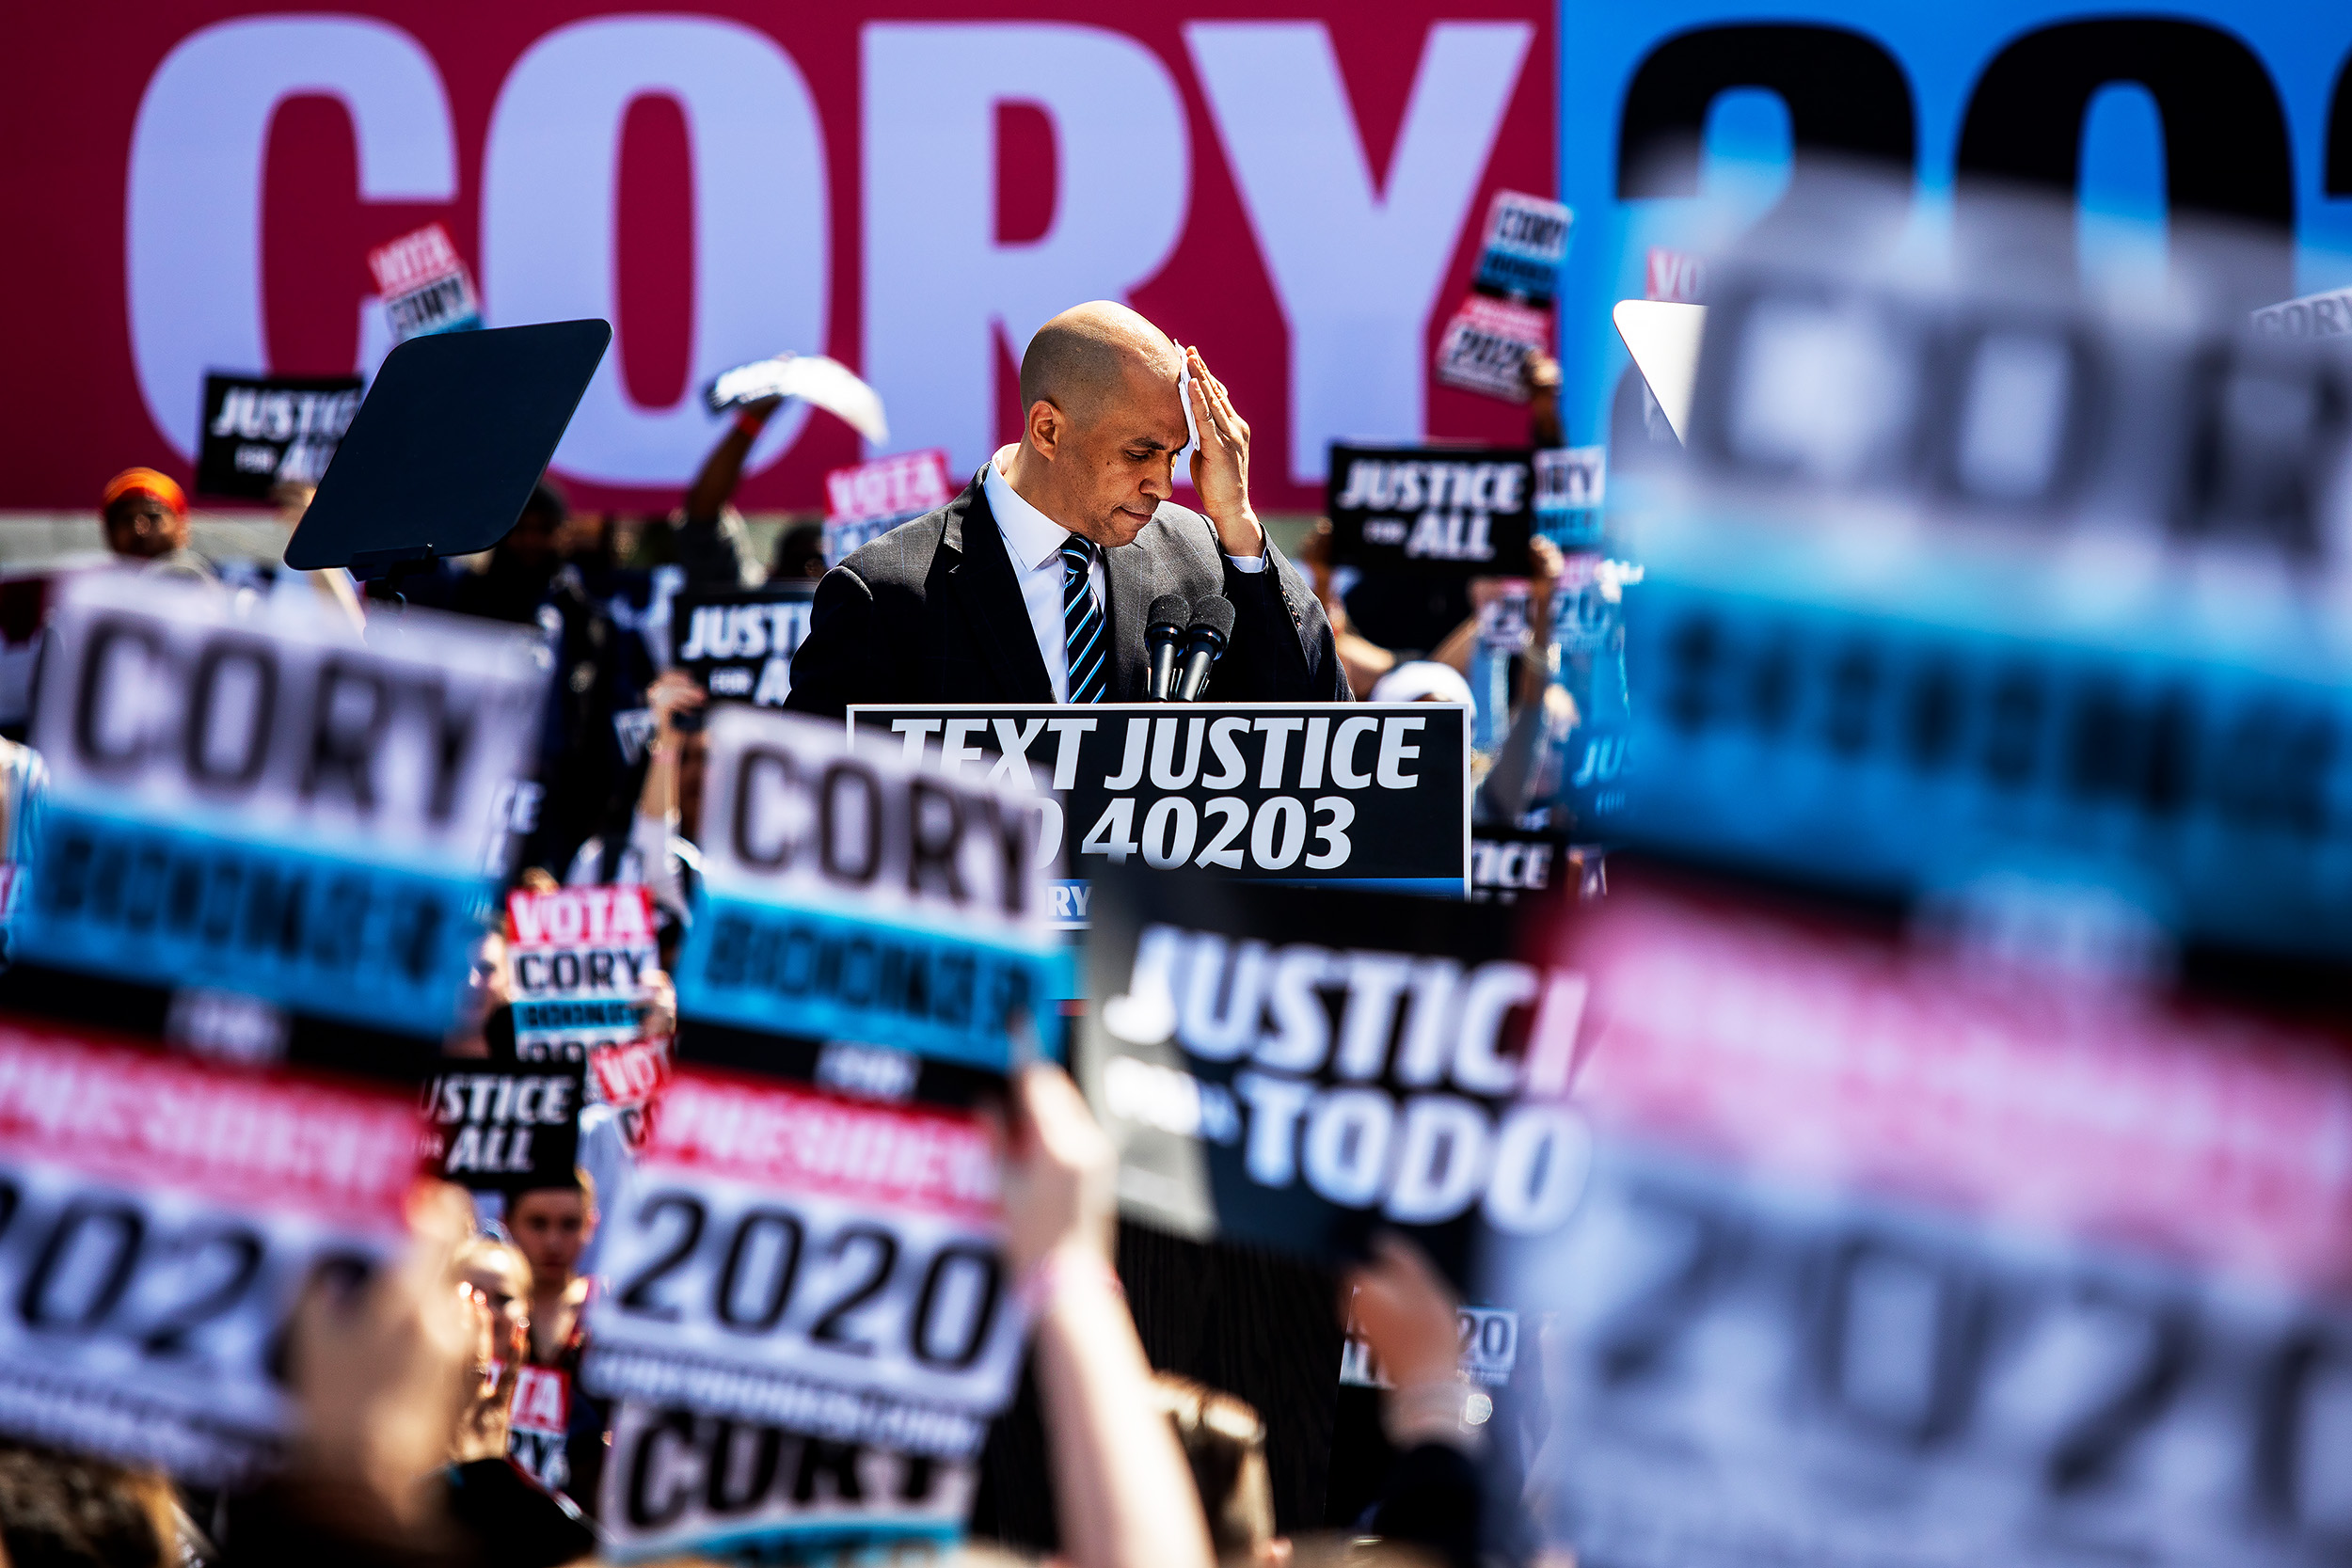 Senator Cory Booker, a Democrat from New Jersey and 2020 presidential candidate, wipes sweat from his face during the kickoff of his 'Justice for All' campaign tour in Newark, New Jersey.